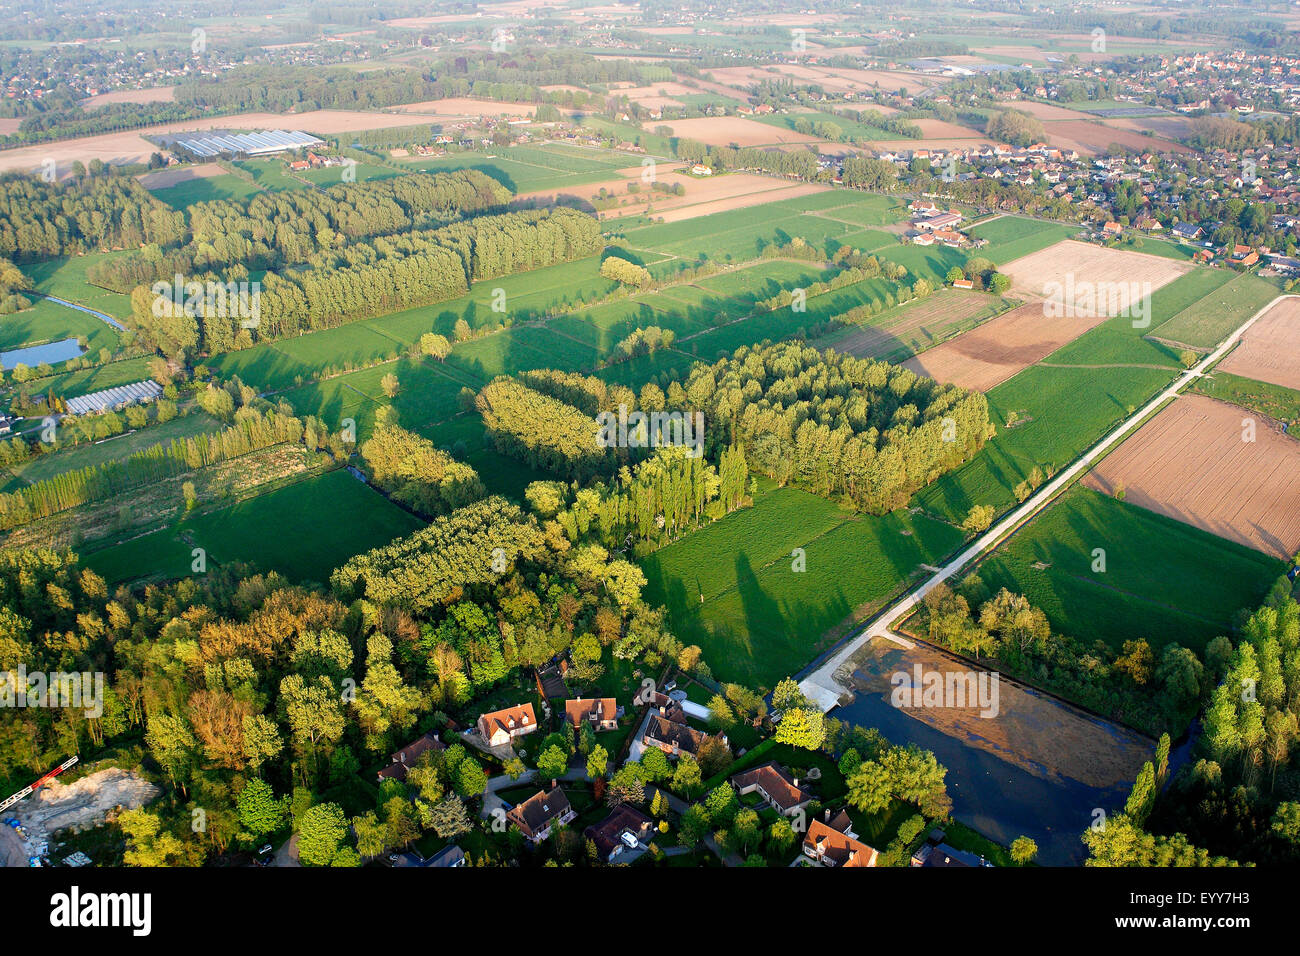 urbanisation at the border of agricultural area with fields, grasslands and hedges from the air, Belgium - Stock Image